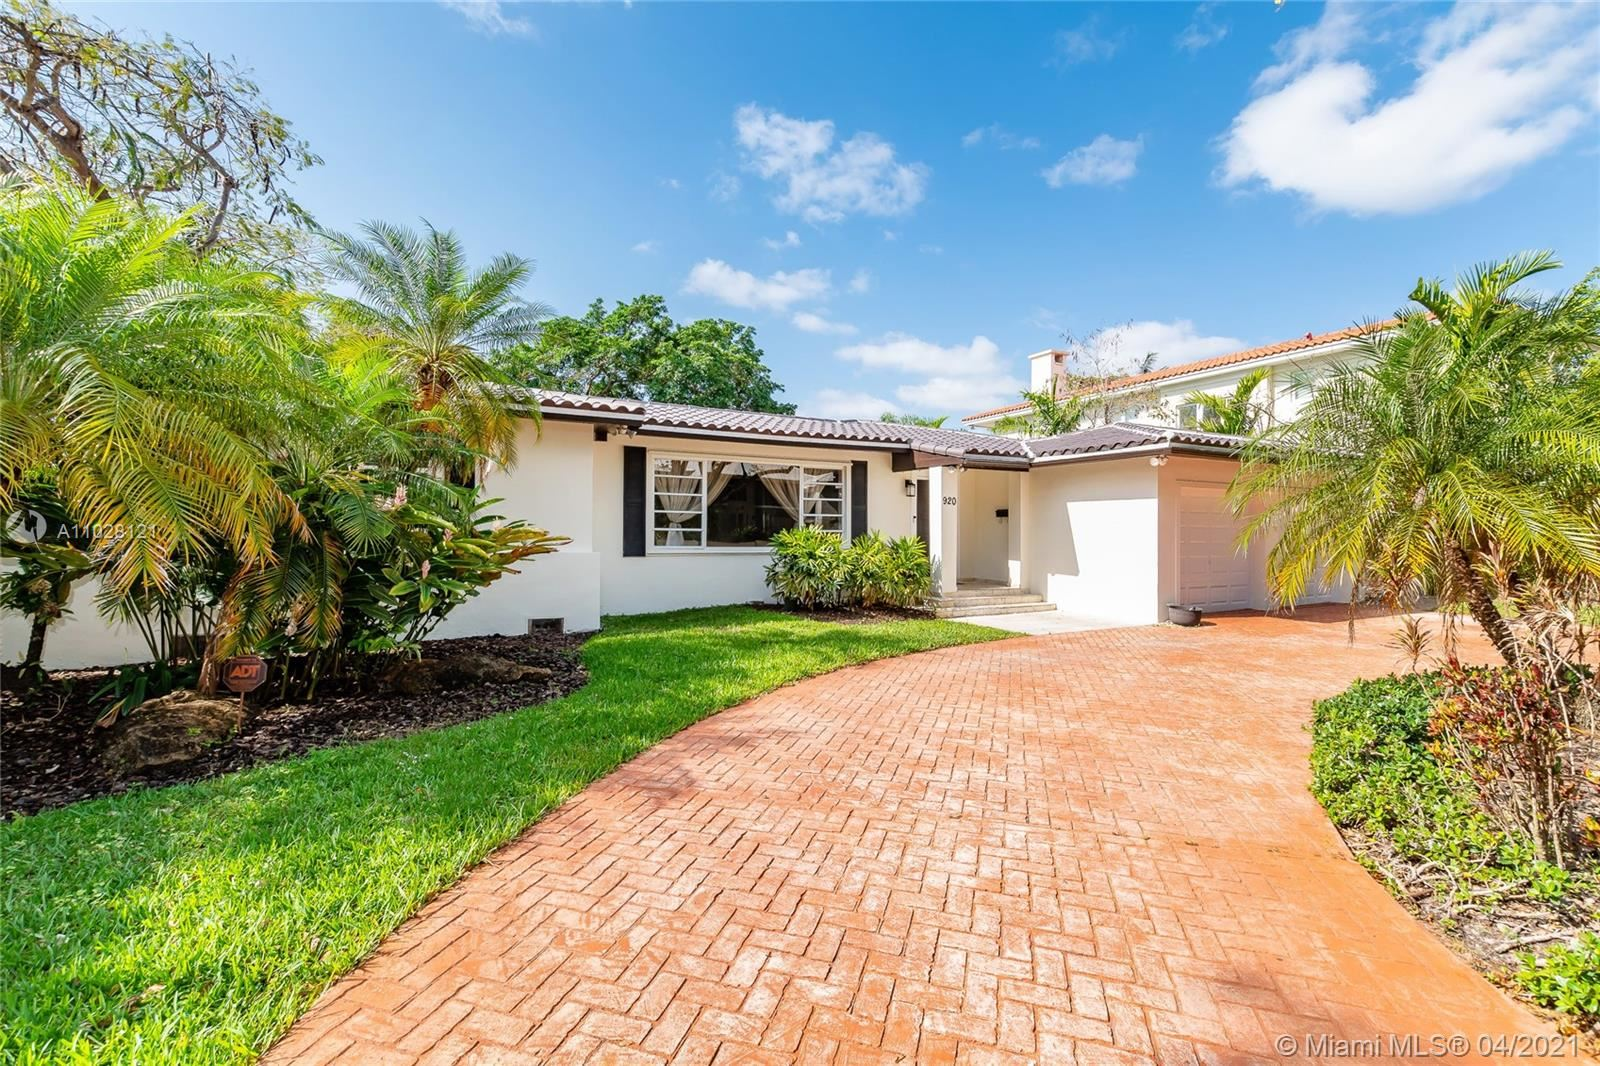 Photo of 920 Palermo Ave, Coral Gables, FL 33134 (MLS # A11028121)